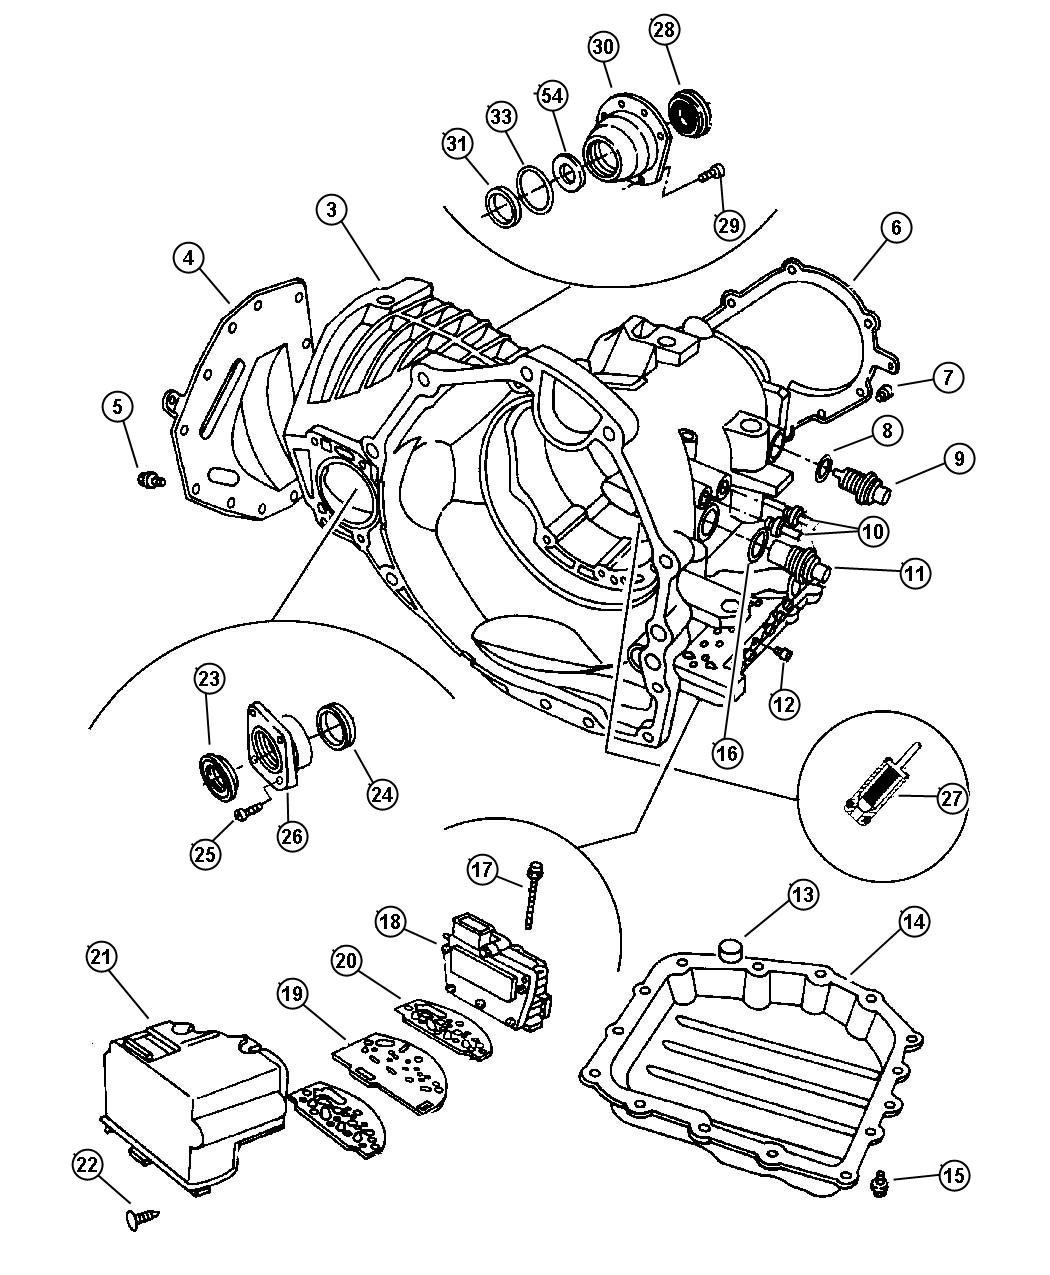 1998 chrysler intrepid wiring diagram